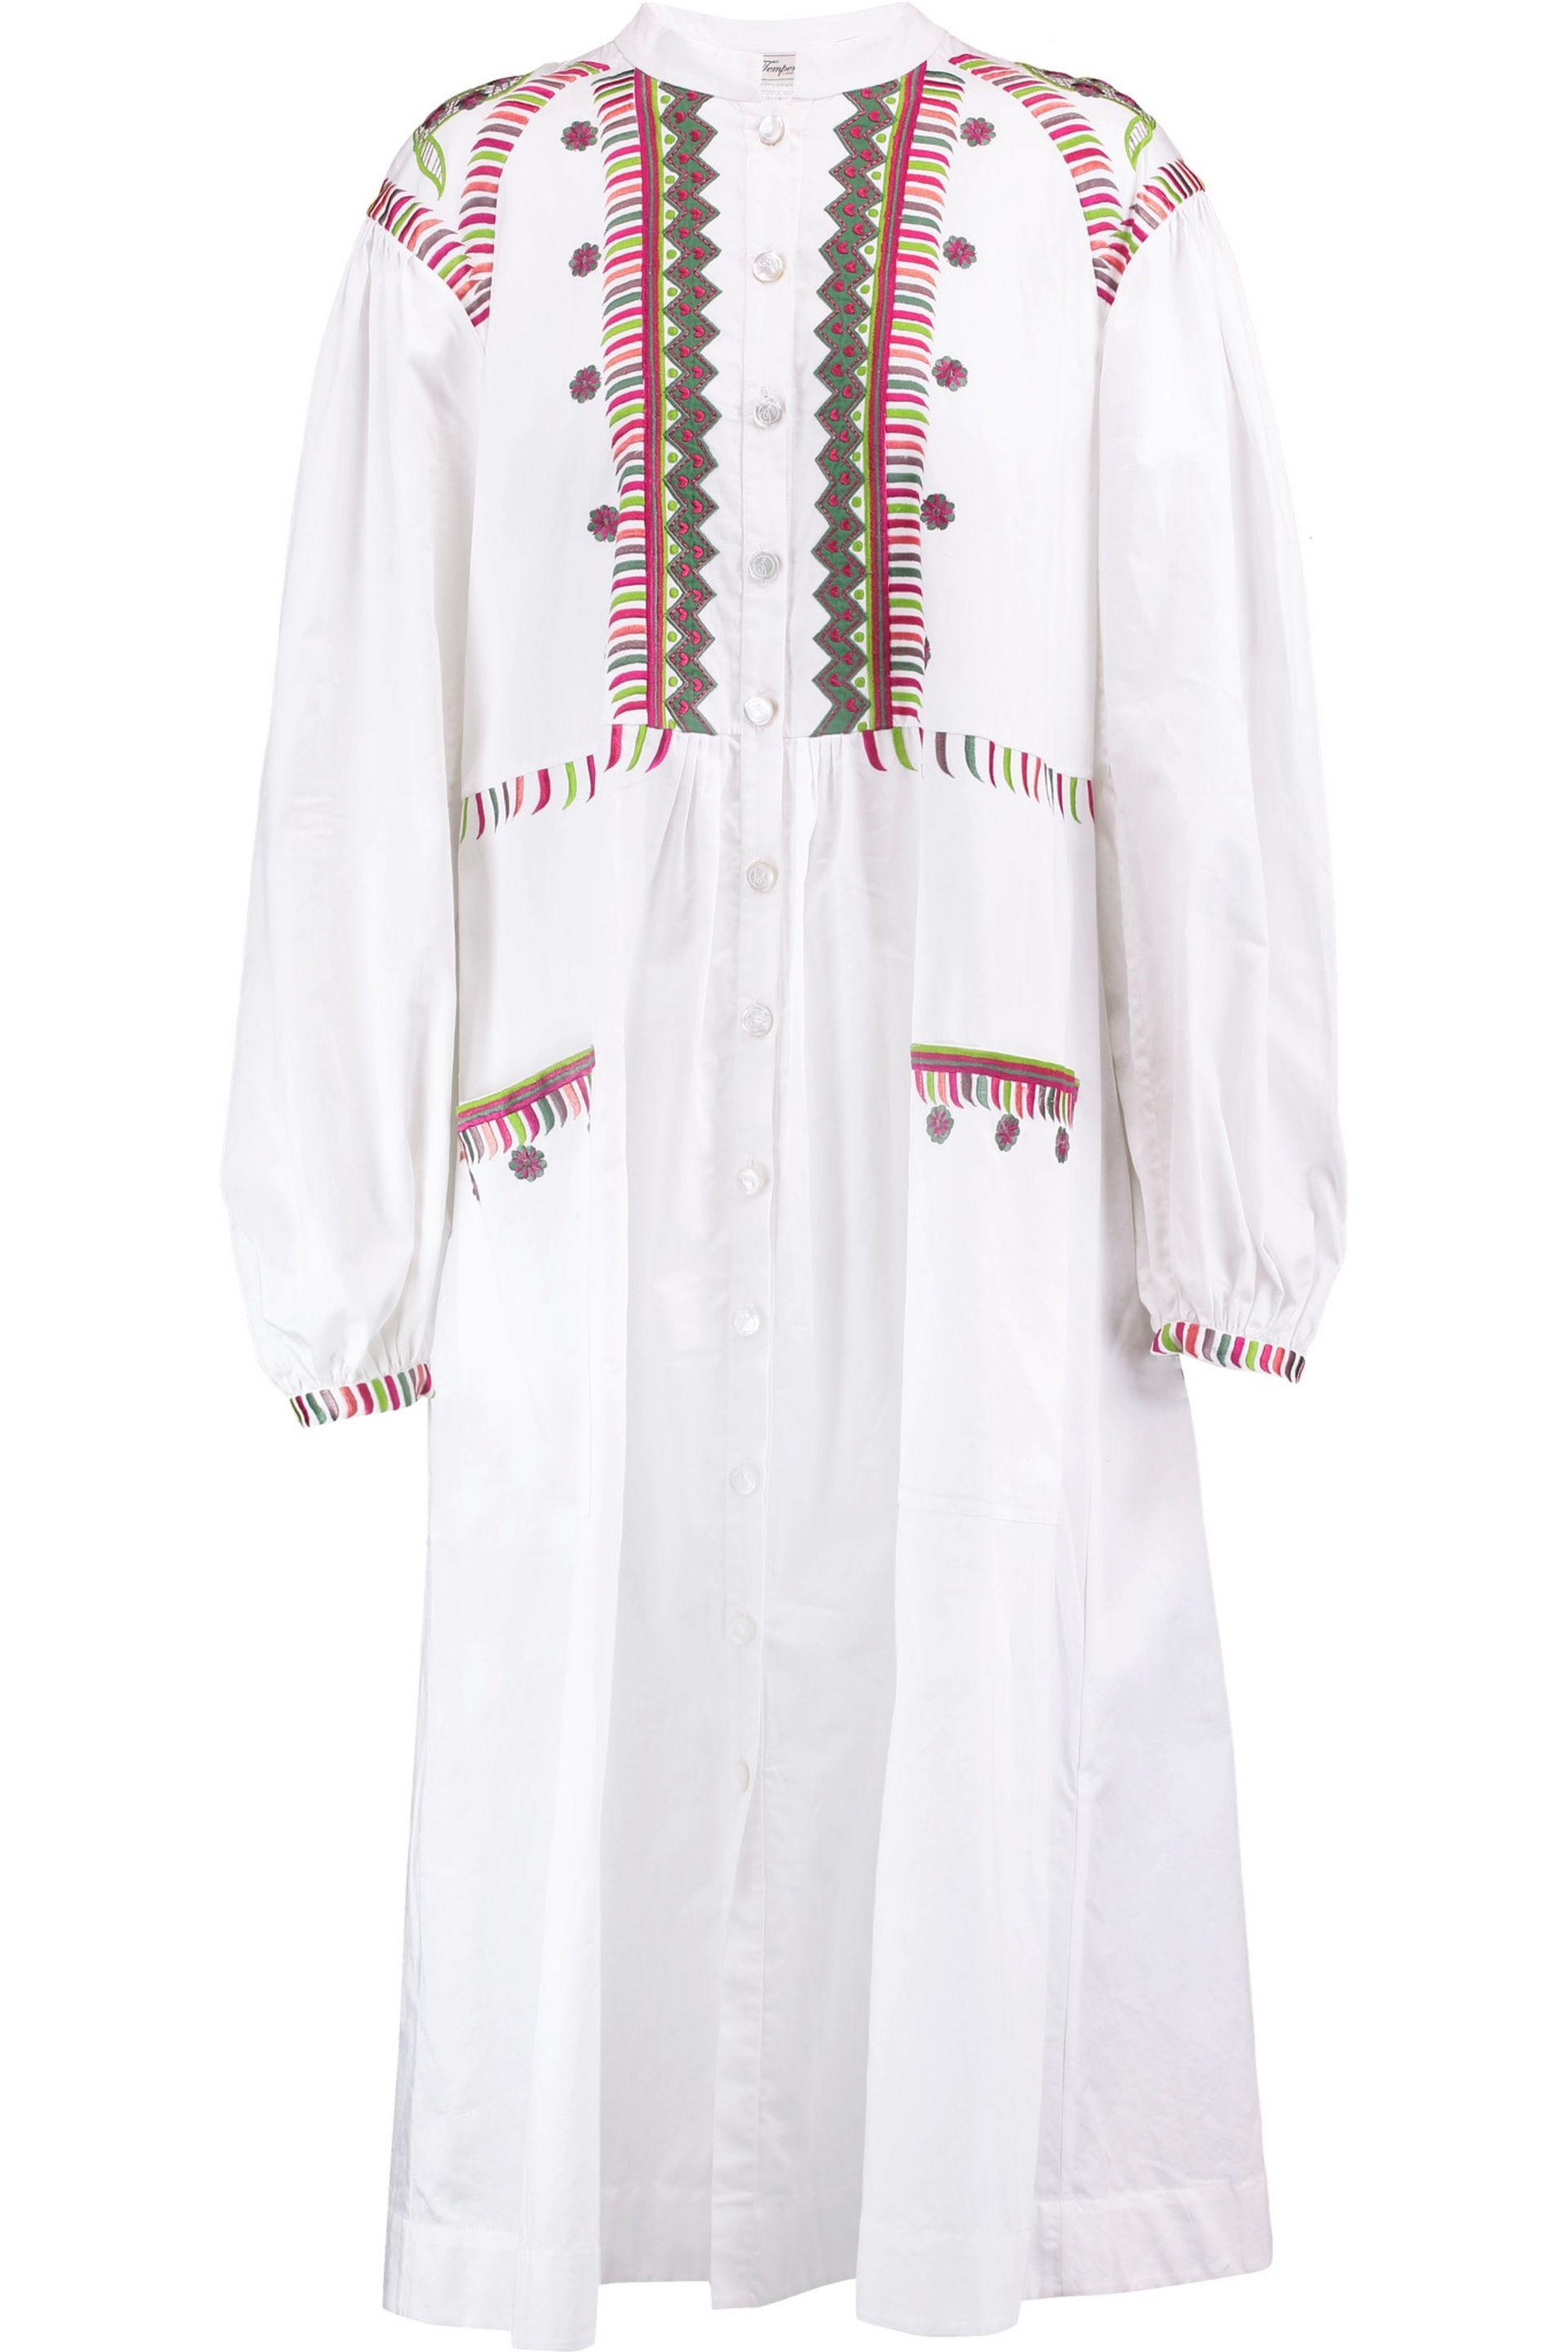 Outlet Release Dates Cheap Sale Outlet Store Temperley London Woman Fable Embroidered Cotton Midi Dress White Size 10 Temperley London Cheap Shop For DJX6r5j